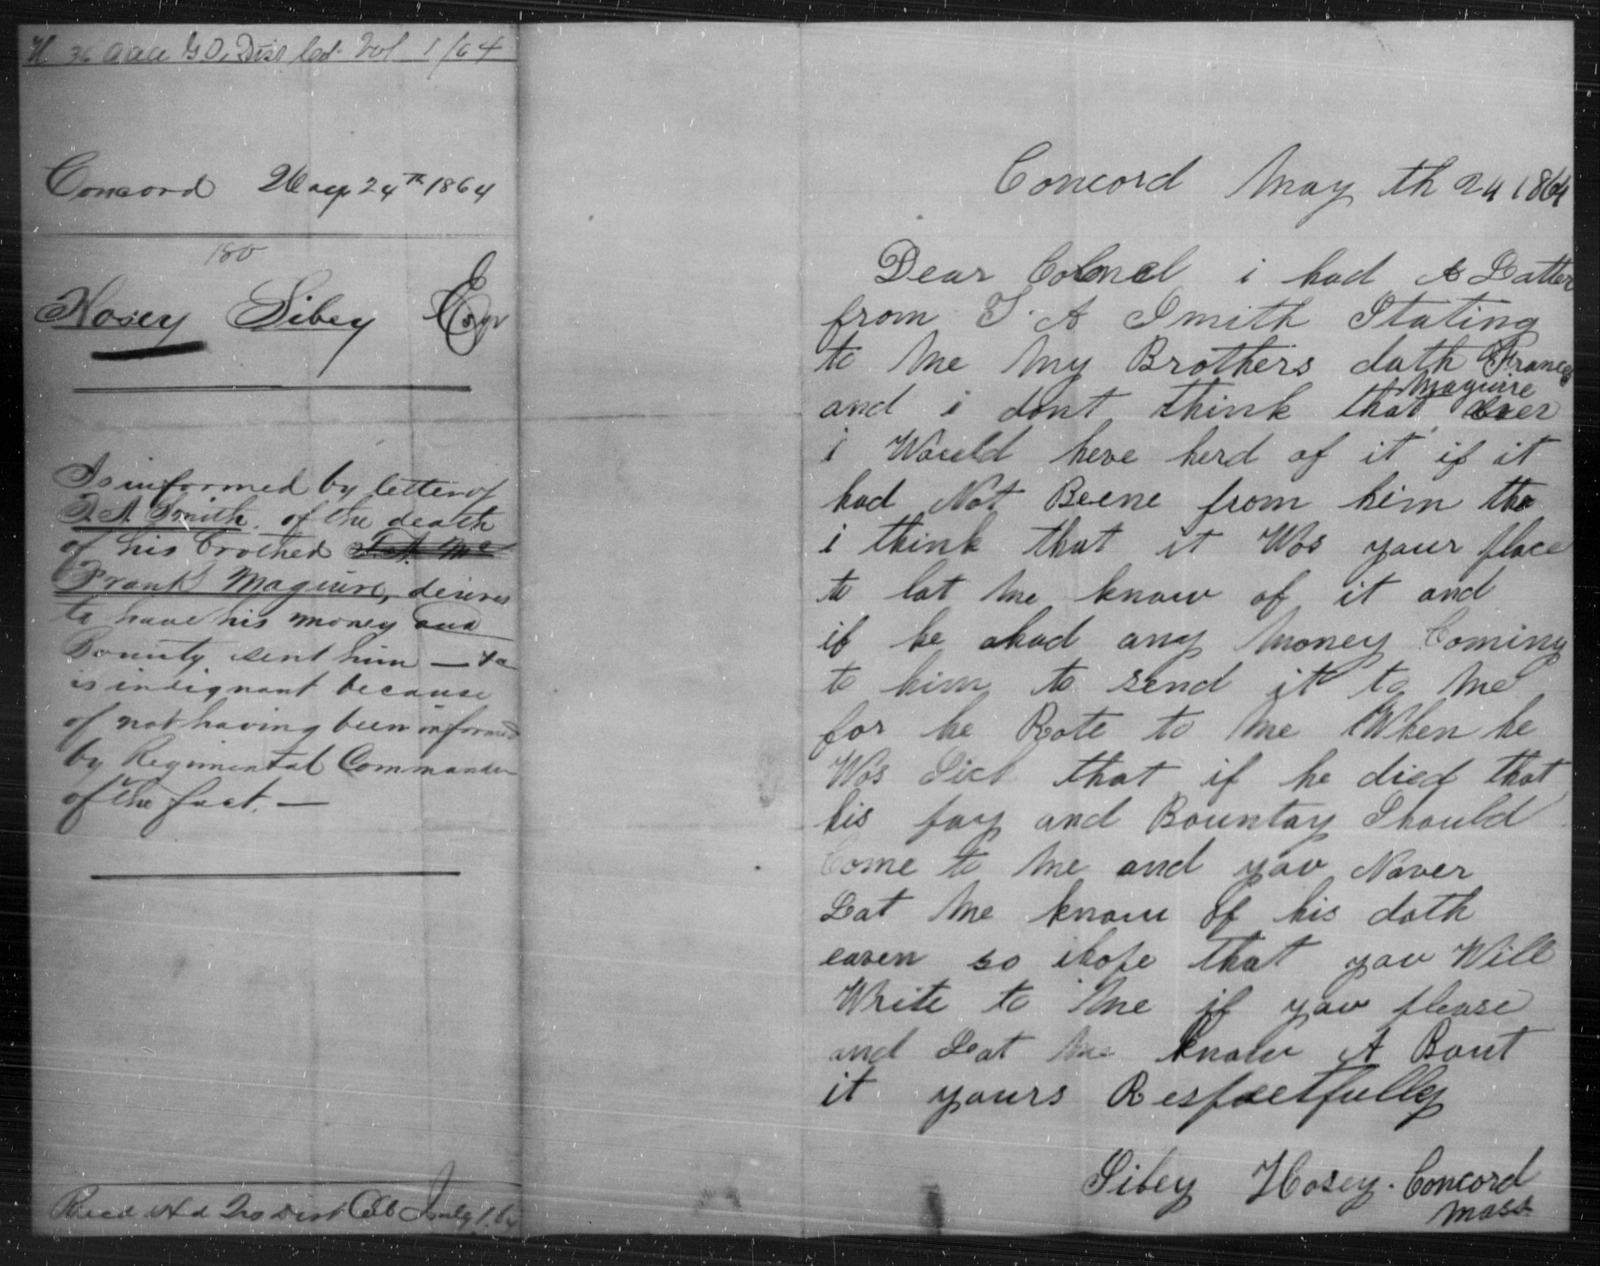 Hosey, Sibey - State: [Blank] - Year: 1864